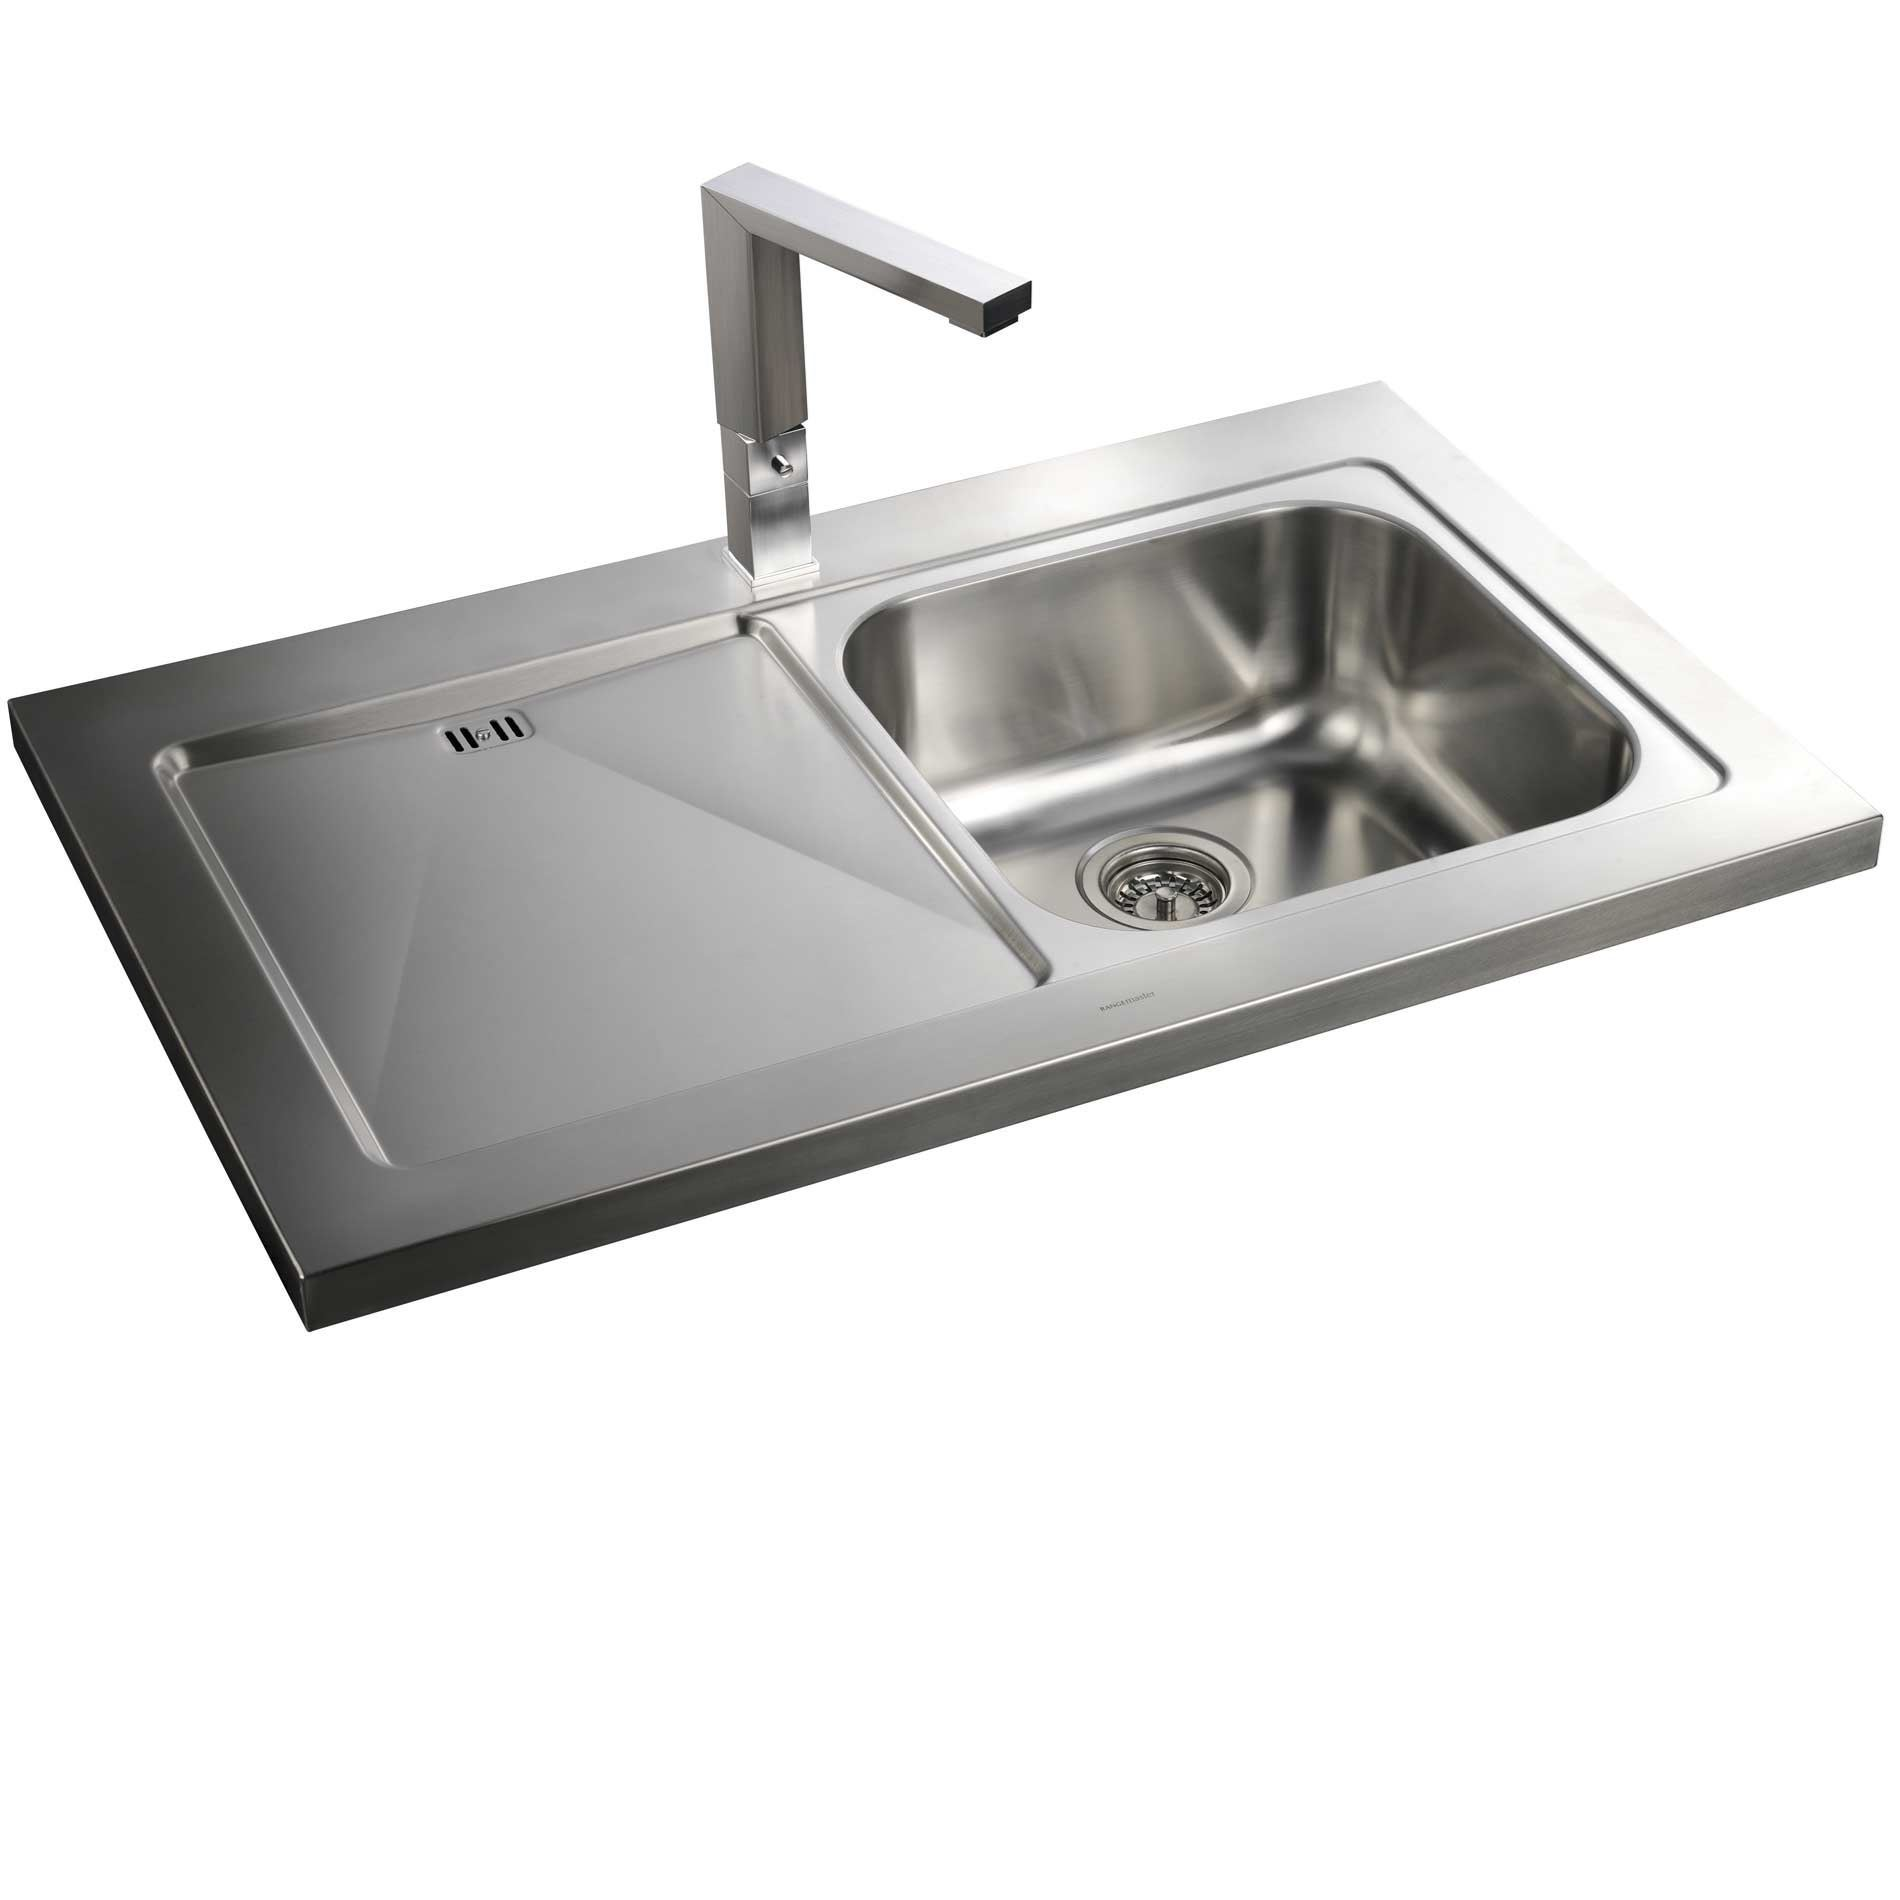 Large Stainless Steel Sinks Uk : ... : Mezzo MZ10001 Sit On Stainless Steel Sink - Kitchen Sinks & Taps